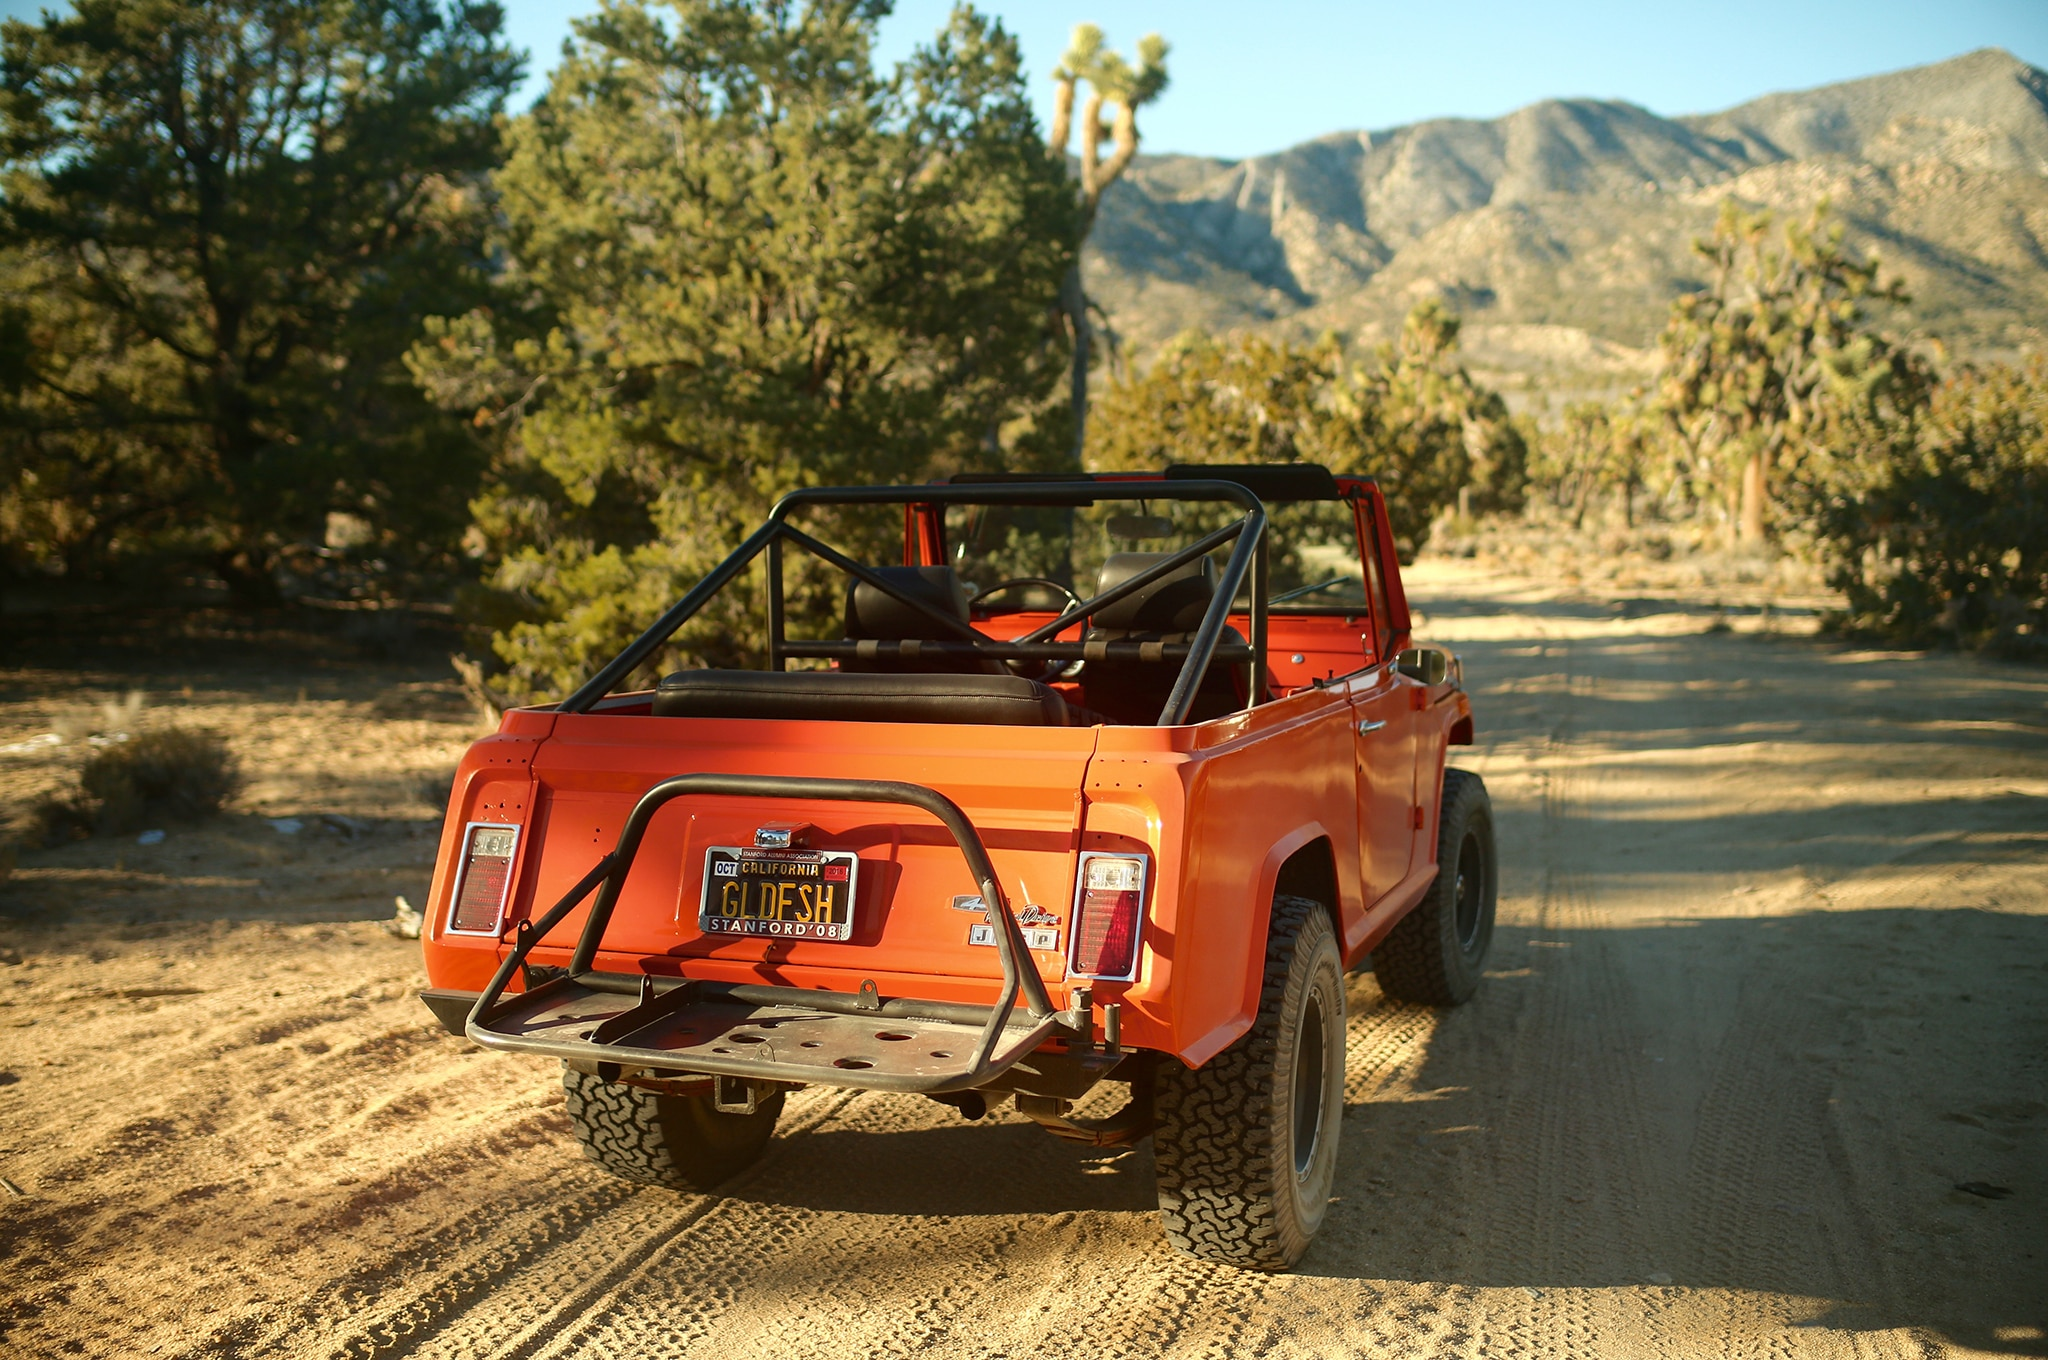 2017 Jeep Wrangler Mpg >> The 1970 Jeepster Commando is an Uncommon Off-Roader